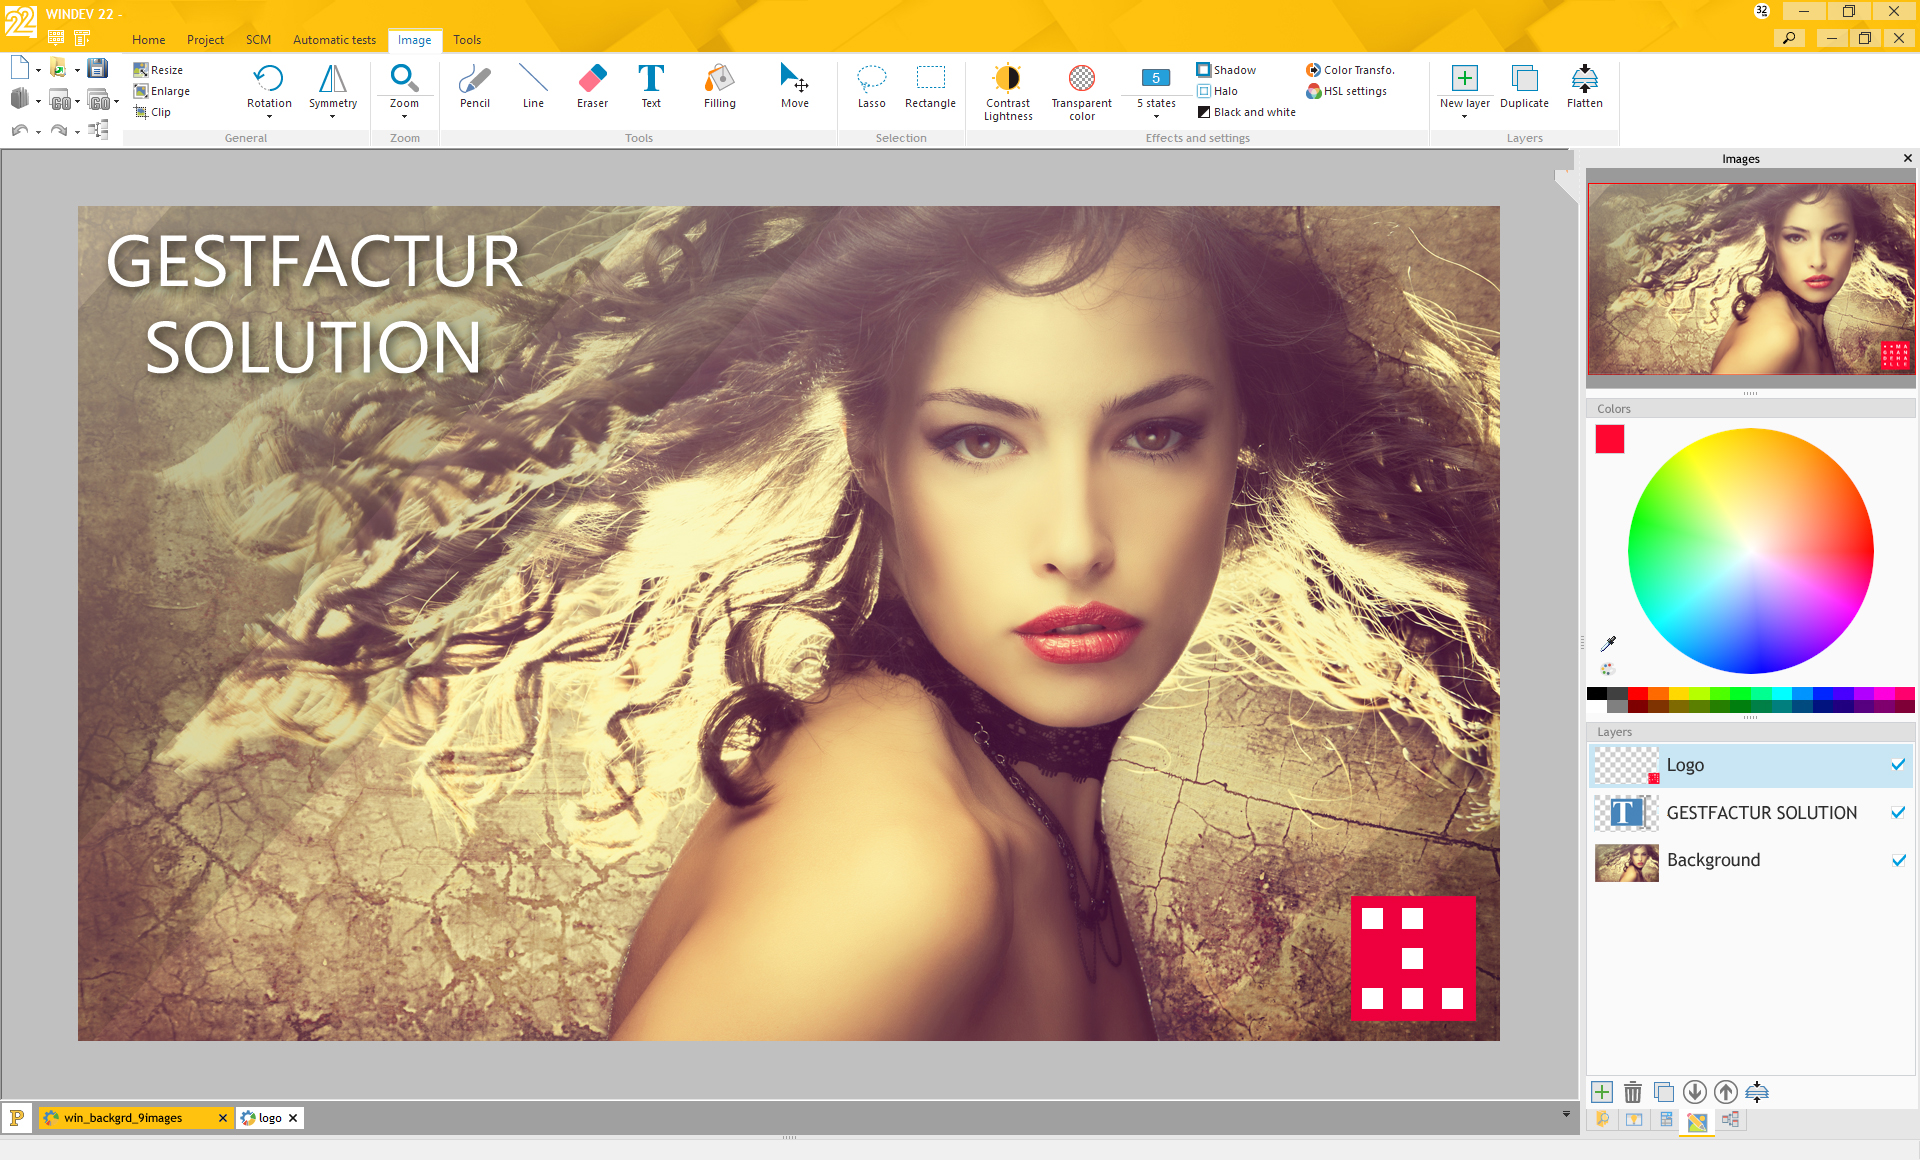 The image editor of version 22